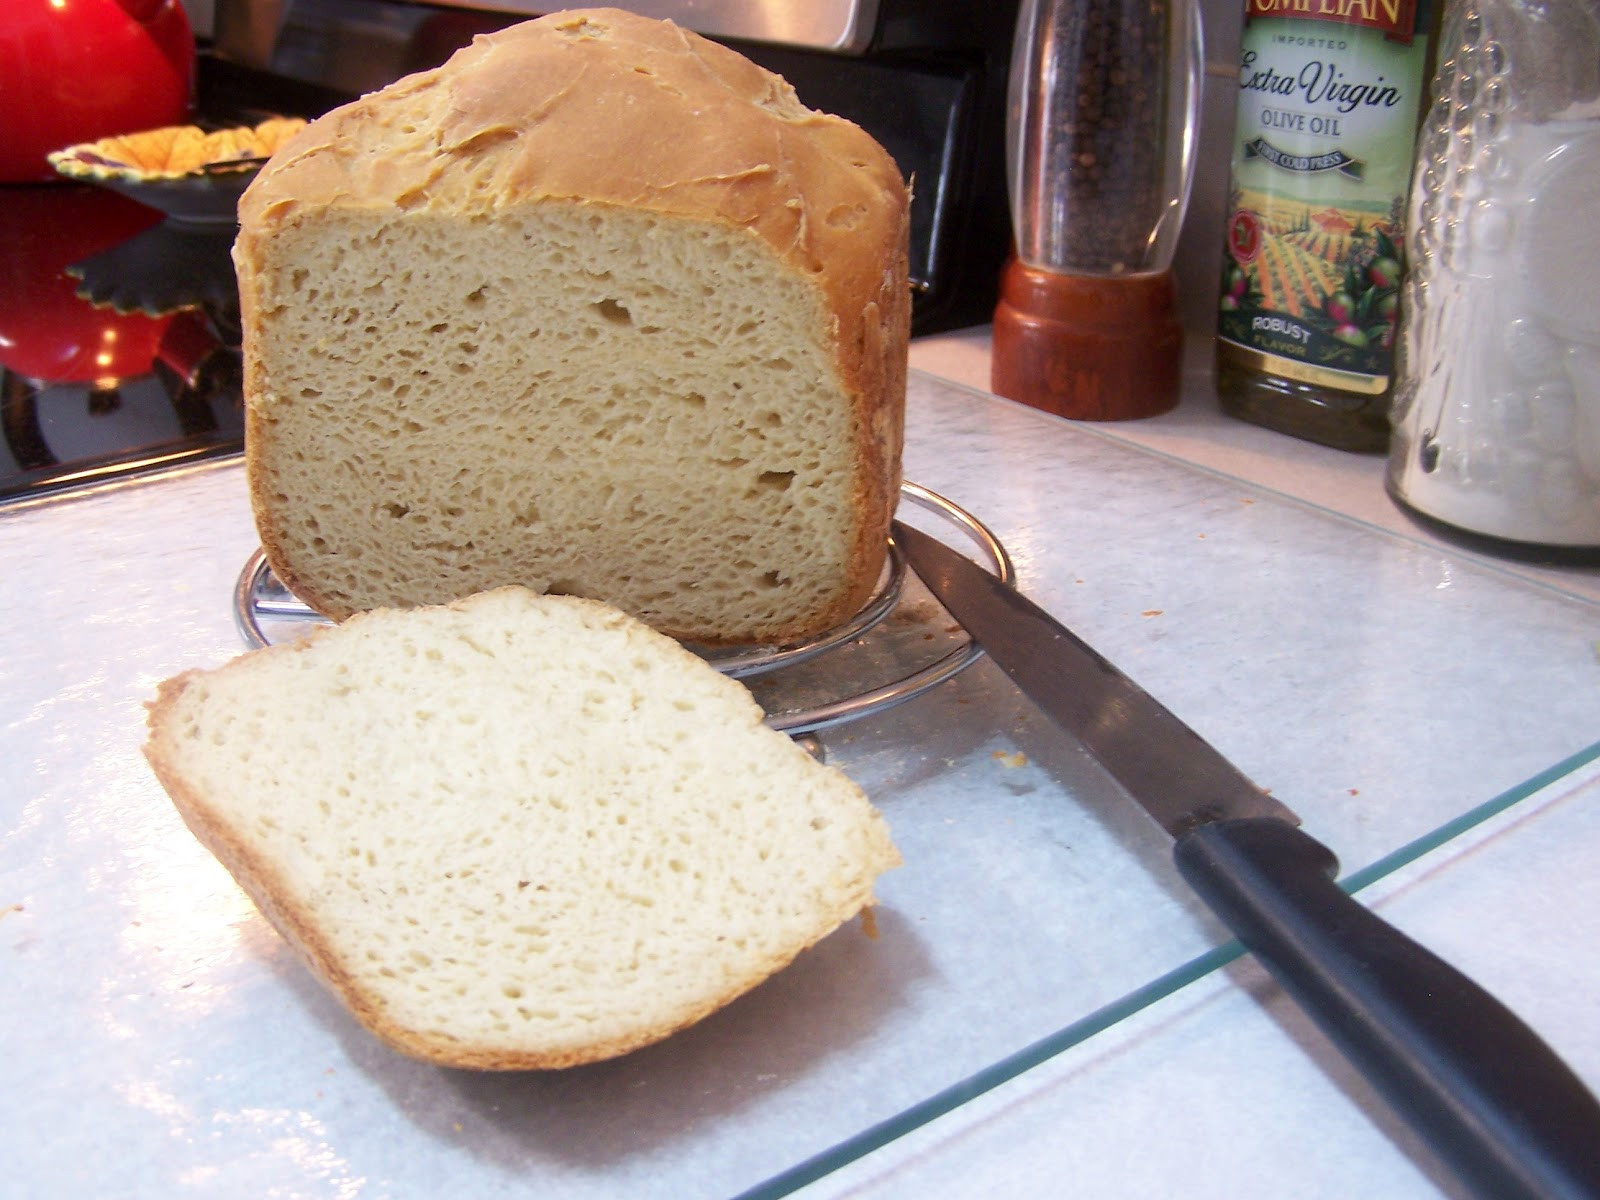 Gluten Free Bread Recipe Breadmaker  Spectacular Gluten Free Bread in the Bread Machine